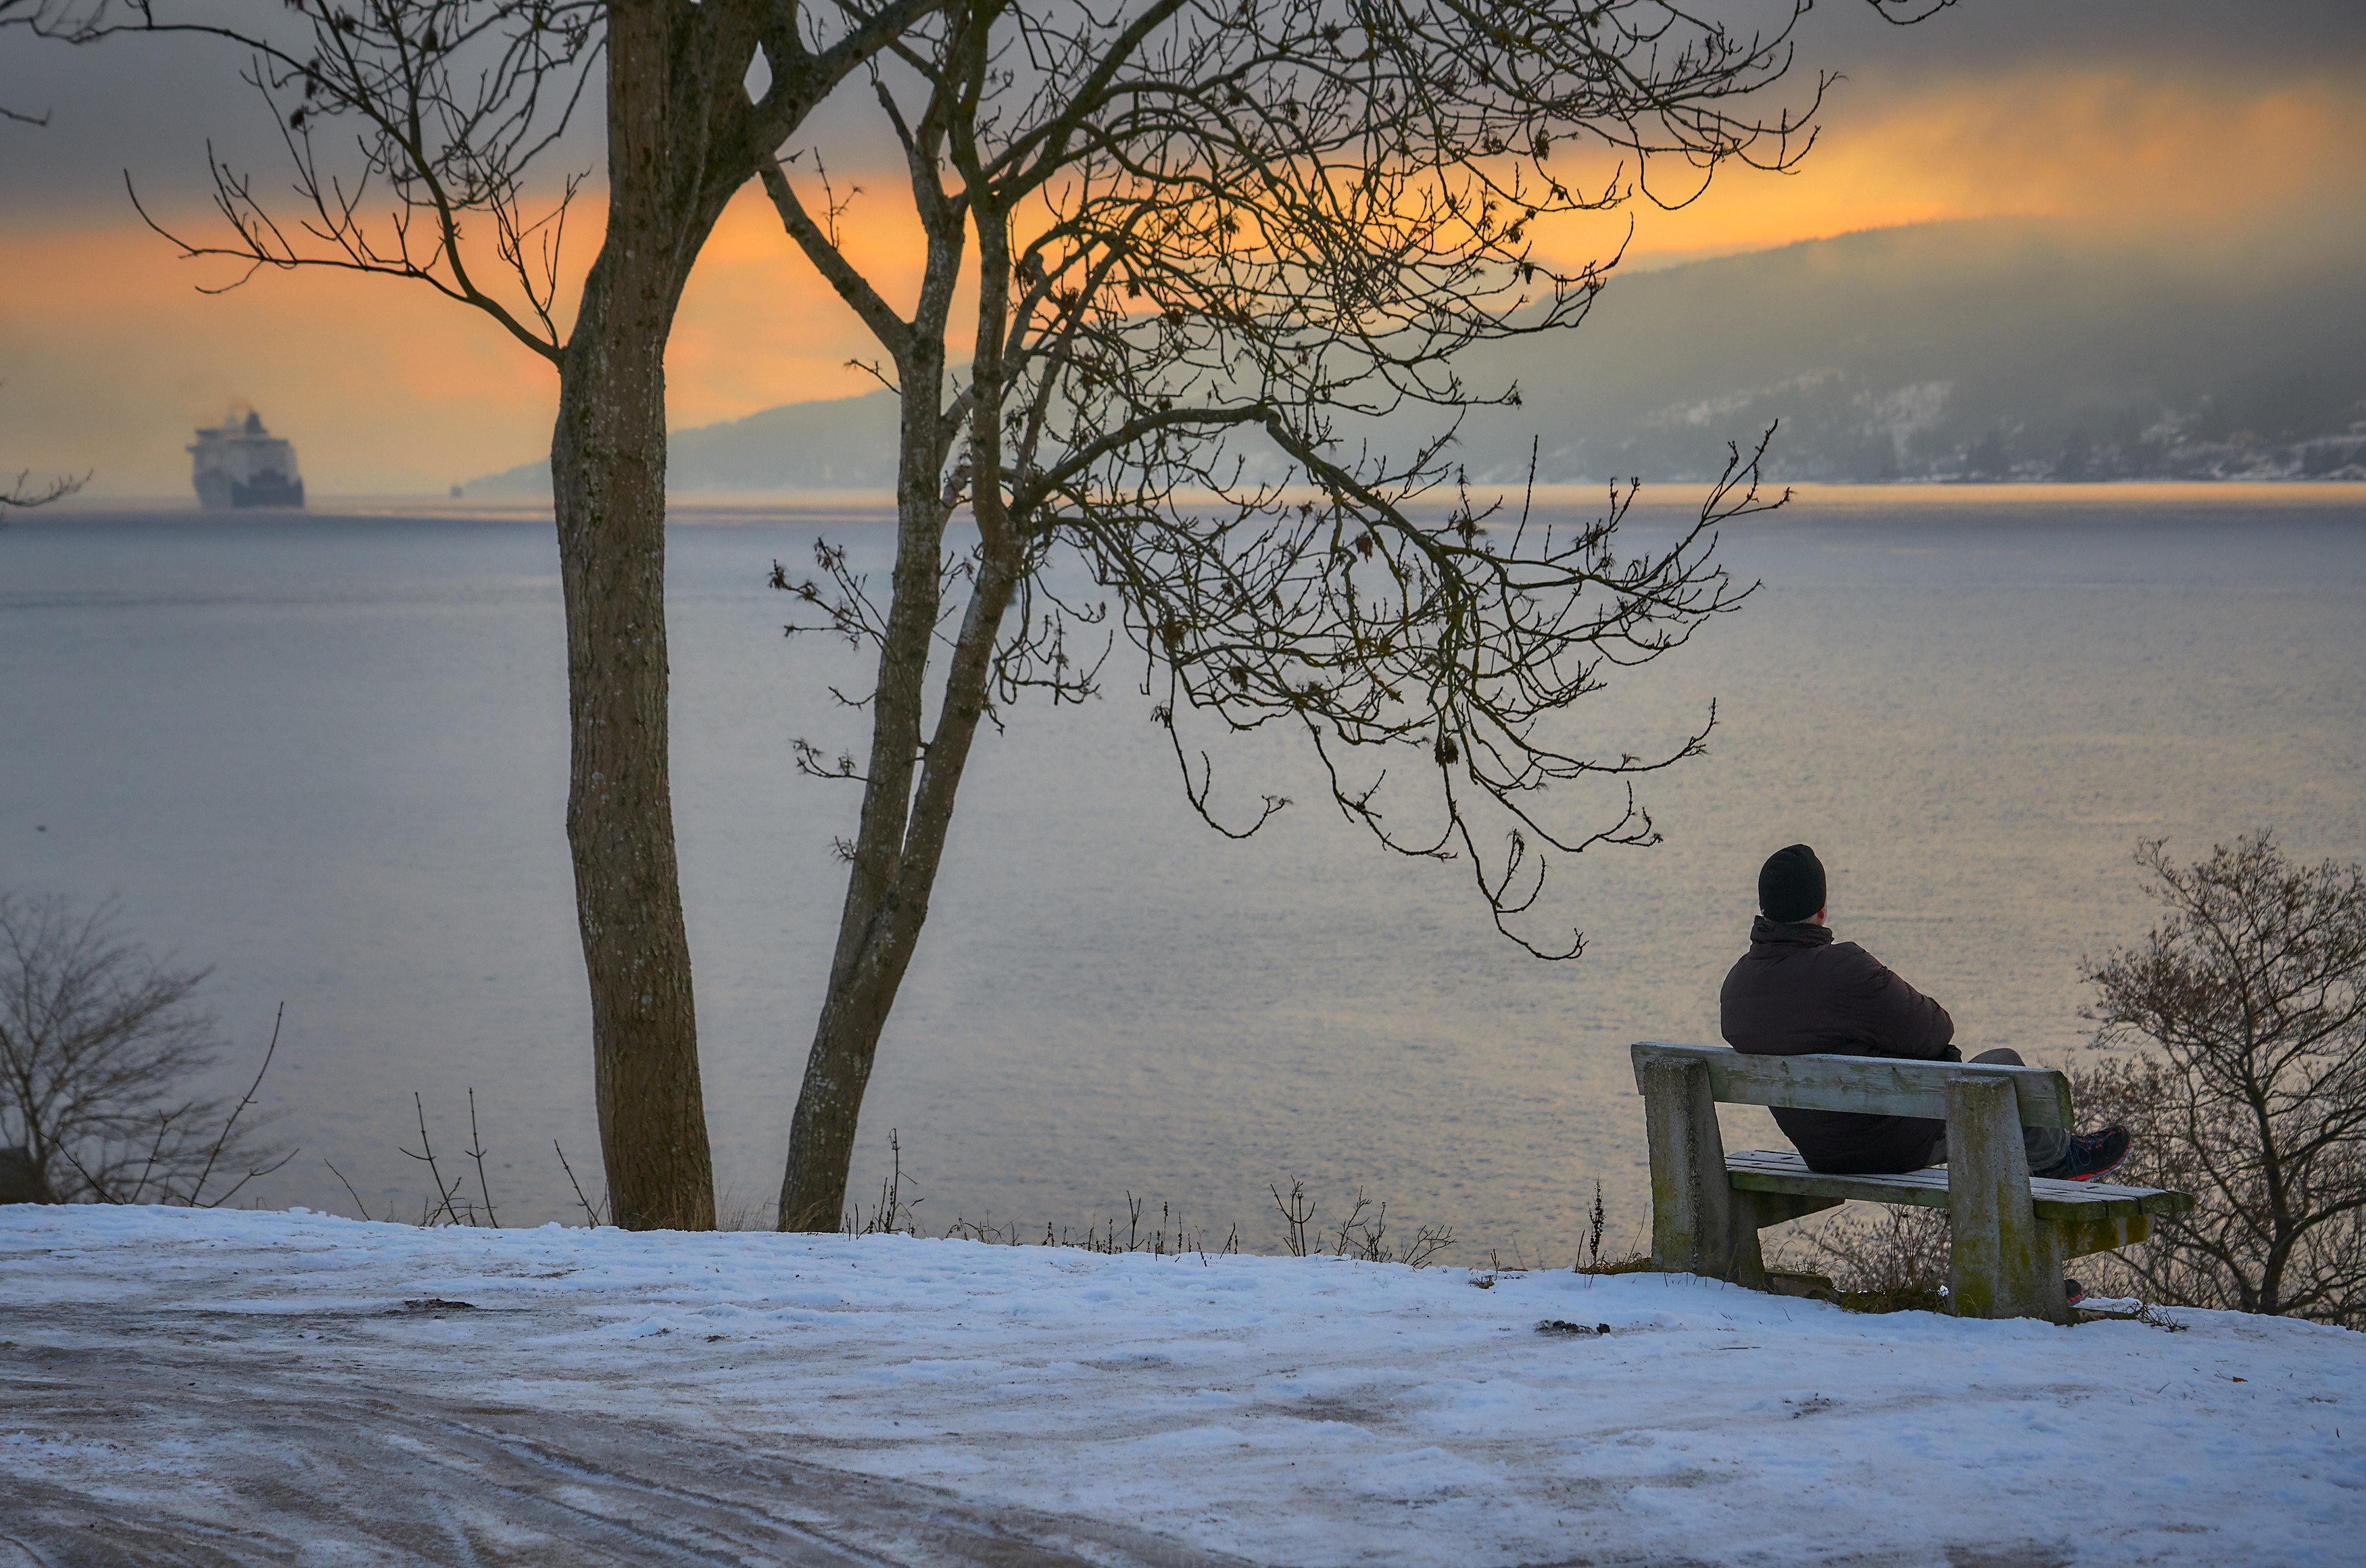 A person contemplating life sitting by a large lake